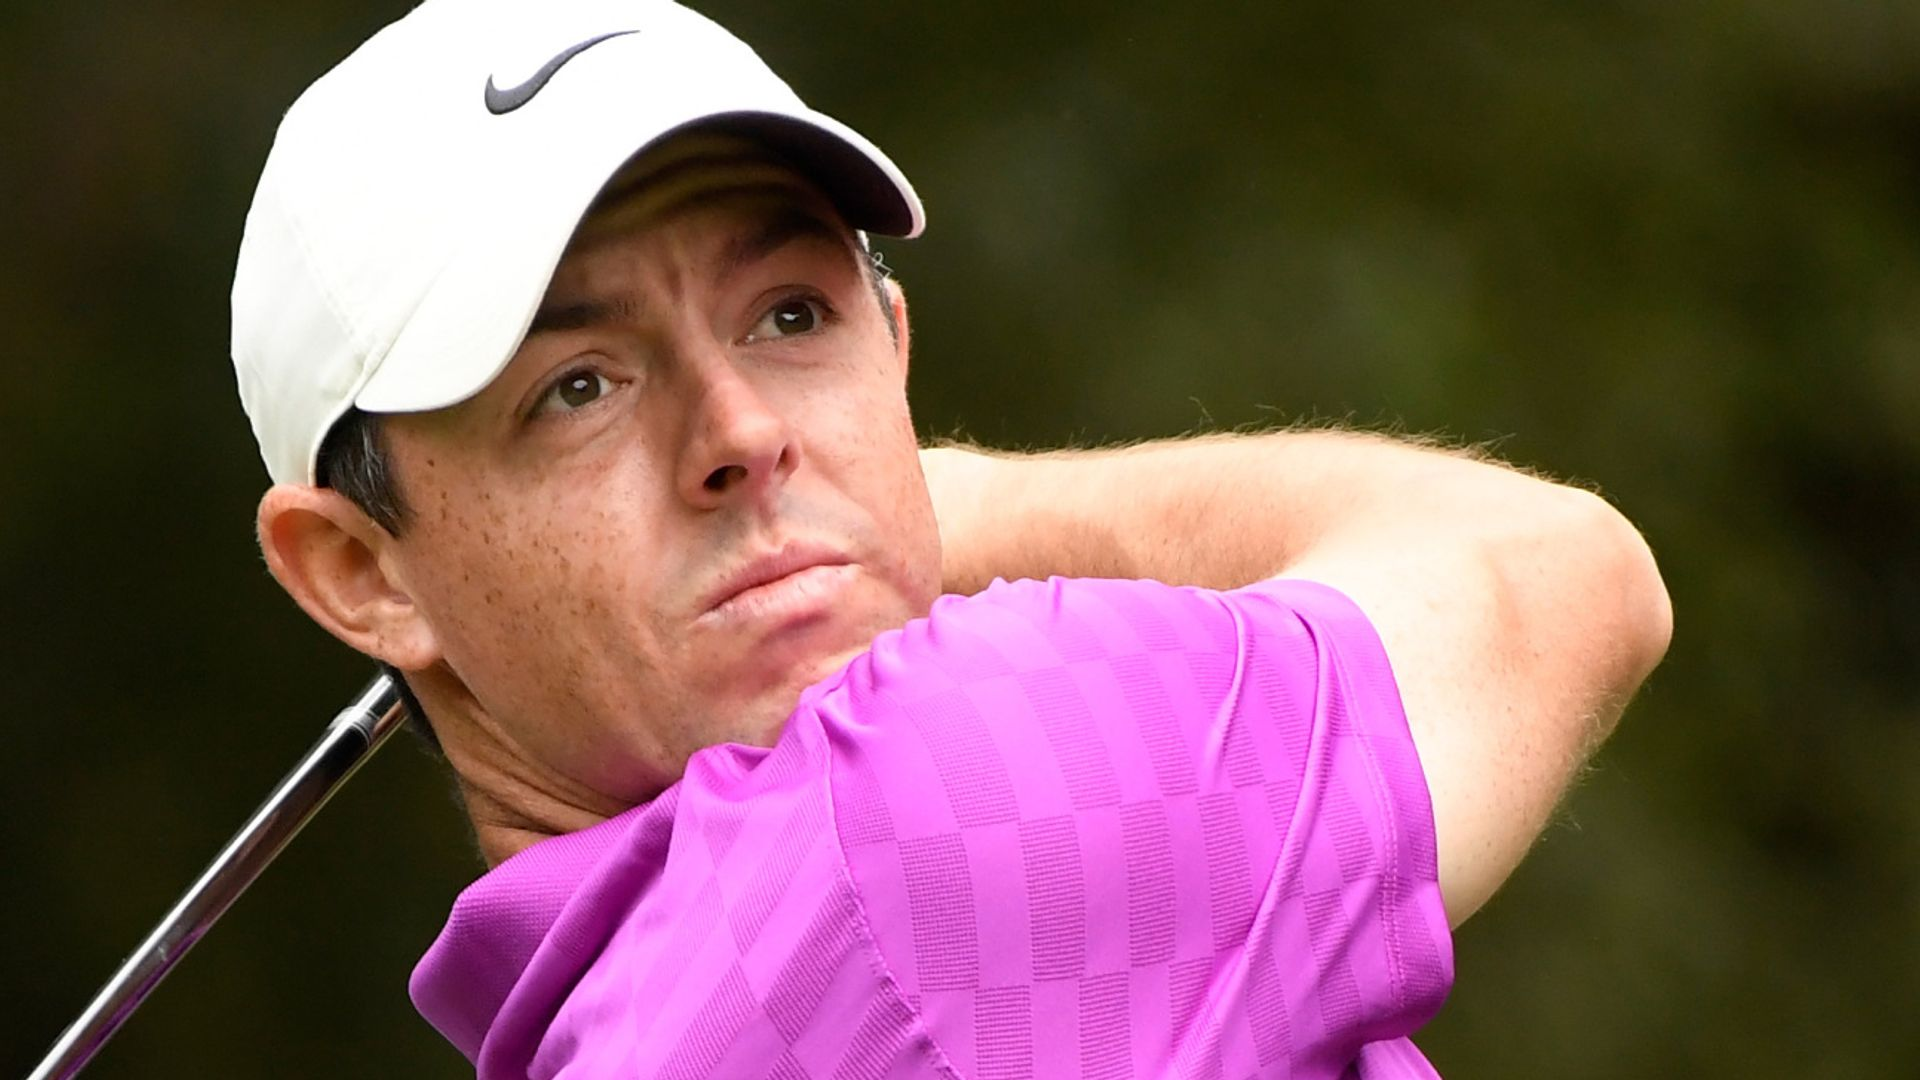 McIlroy snaps club in anger!